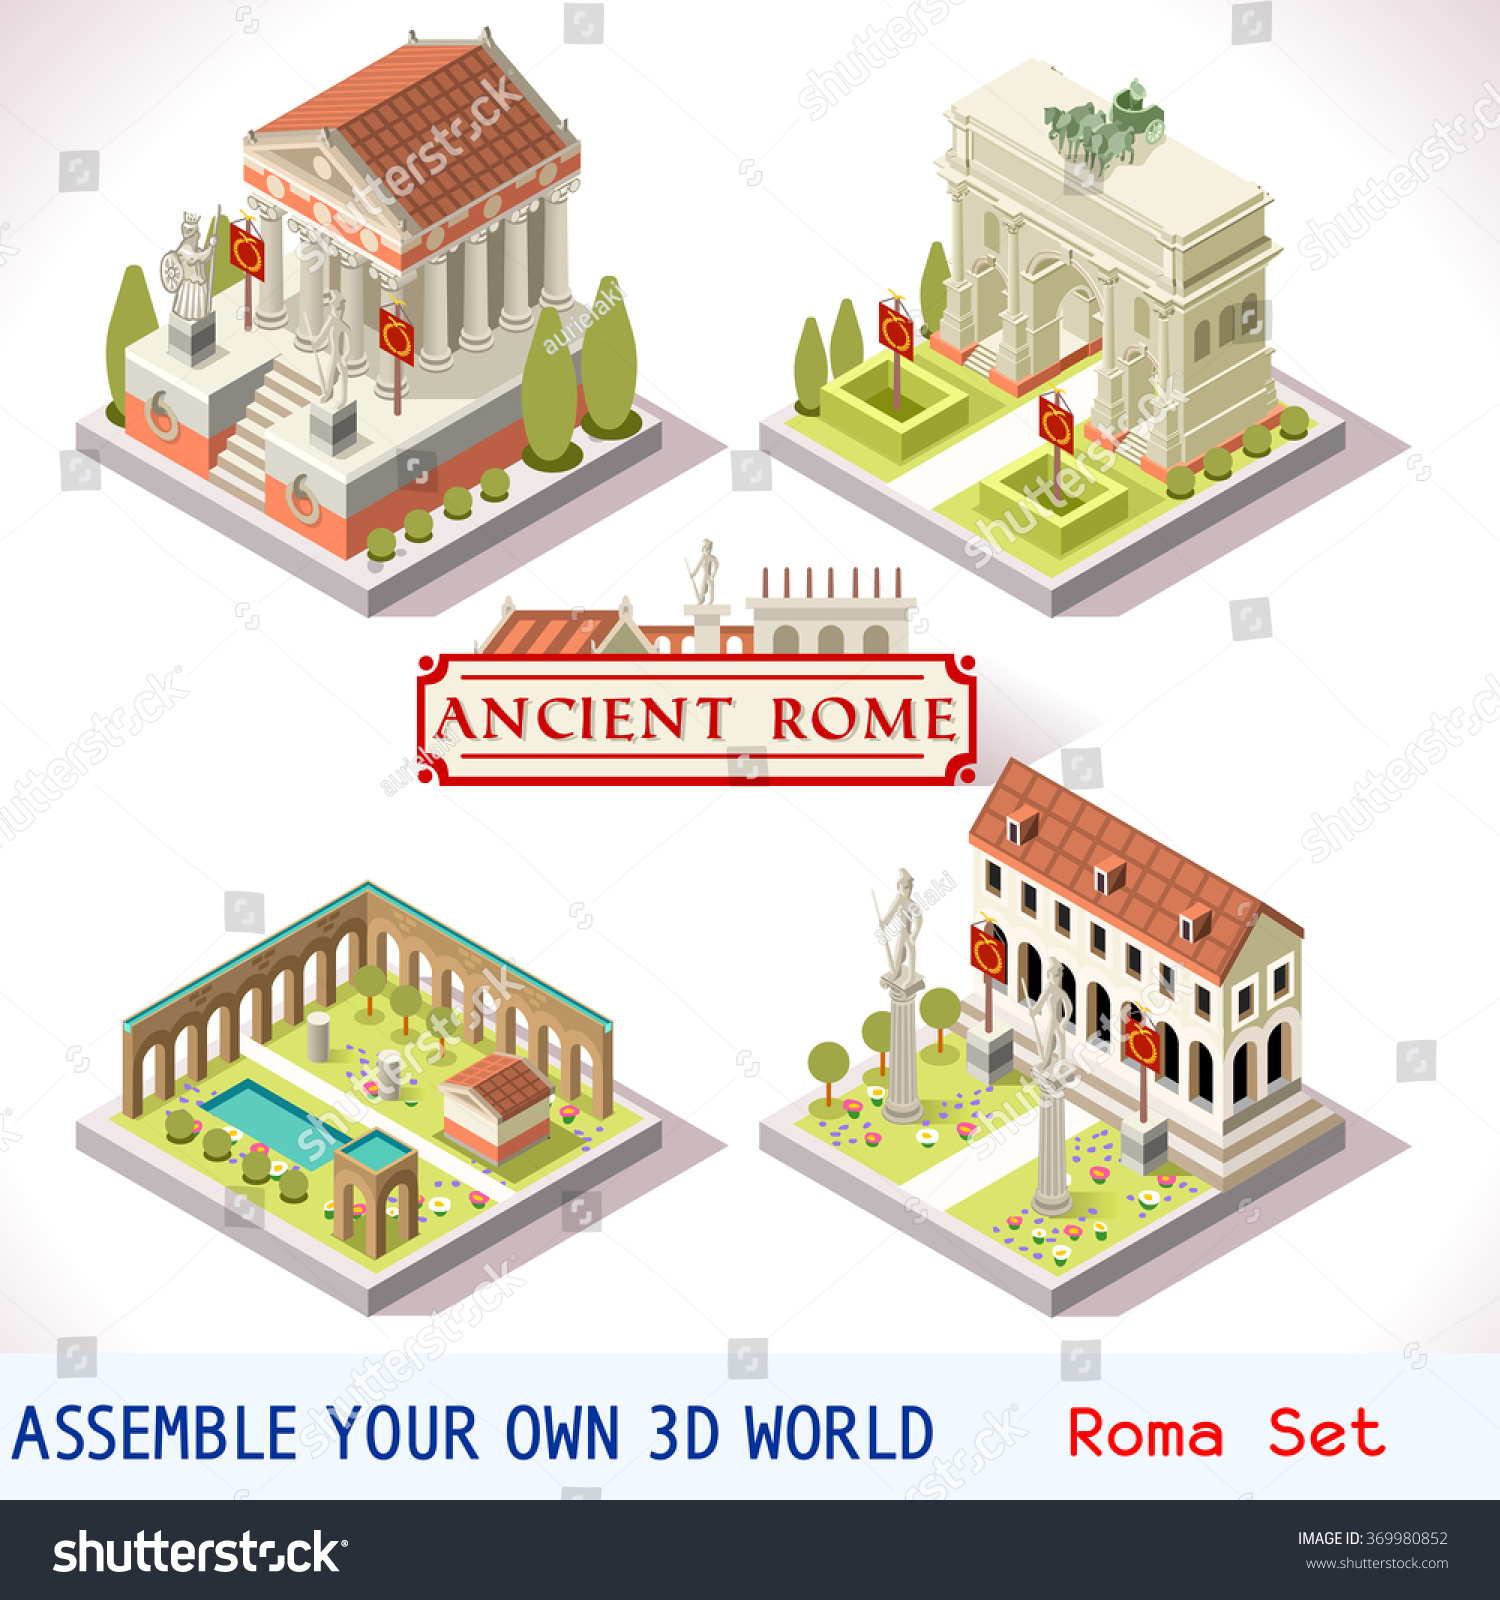 Isometric building ancient rome landmark tile stock vector for Build your own 3d house